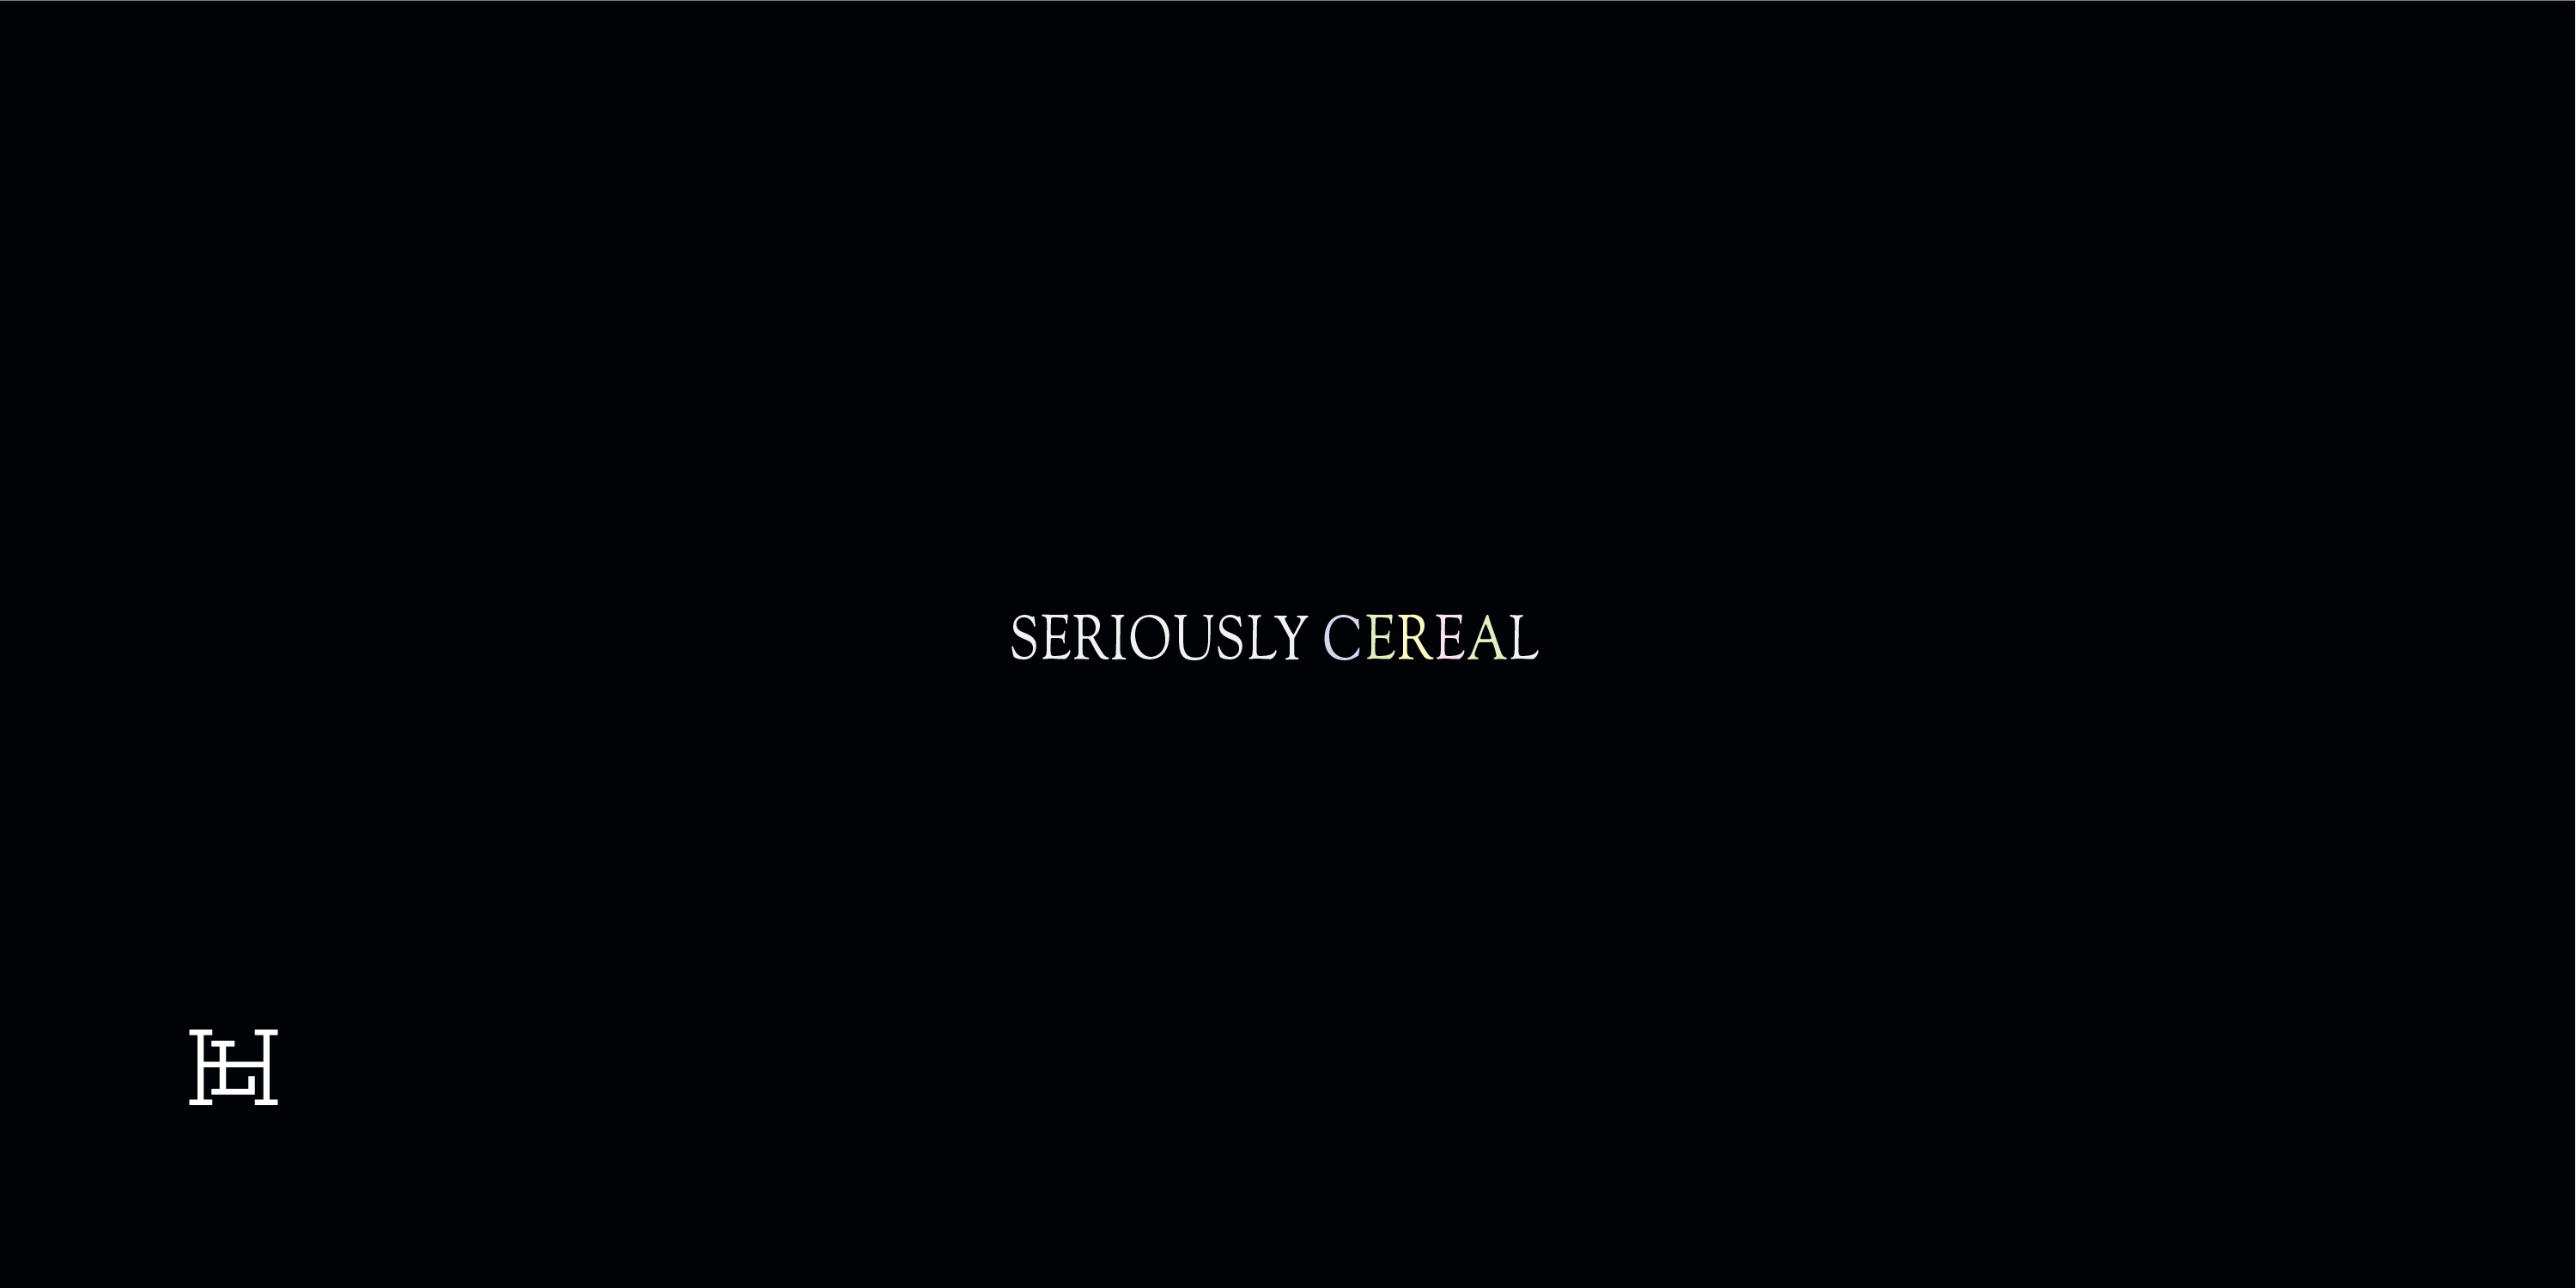 SeriouslyCereal01_FNL